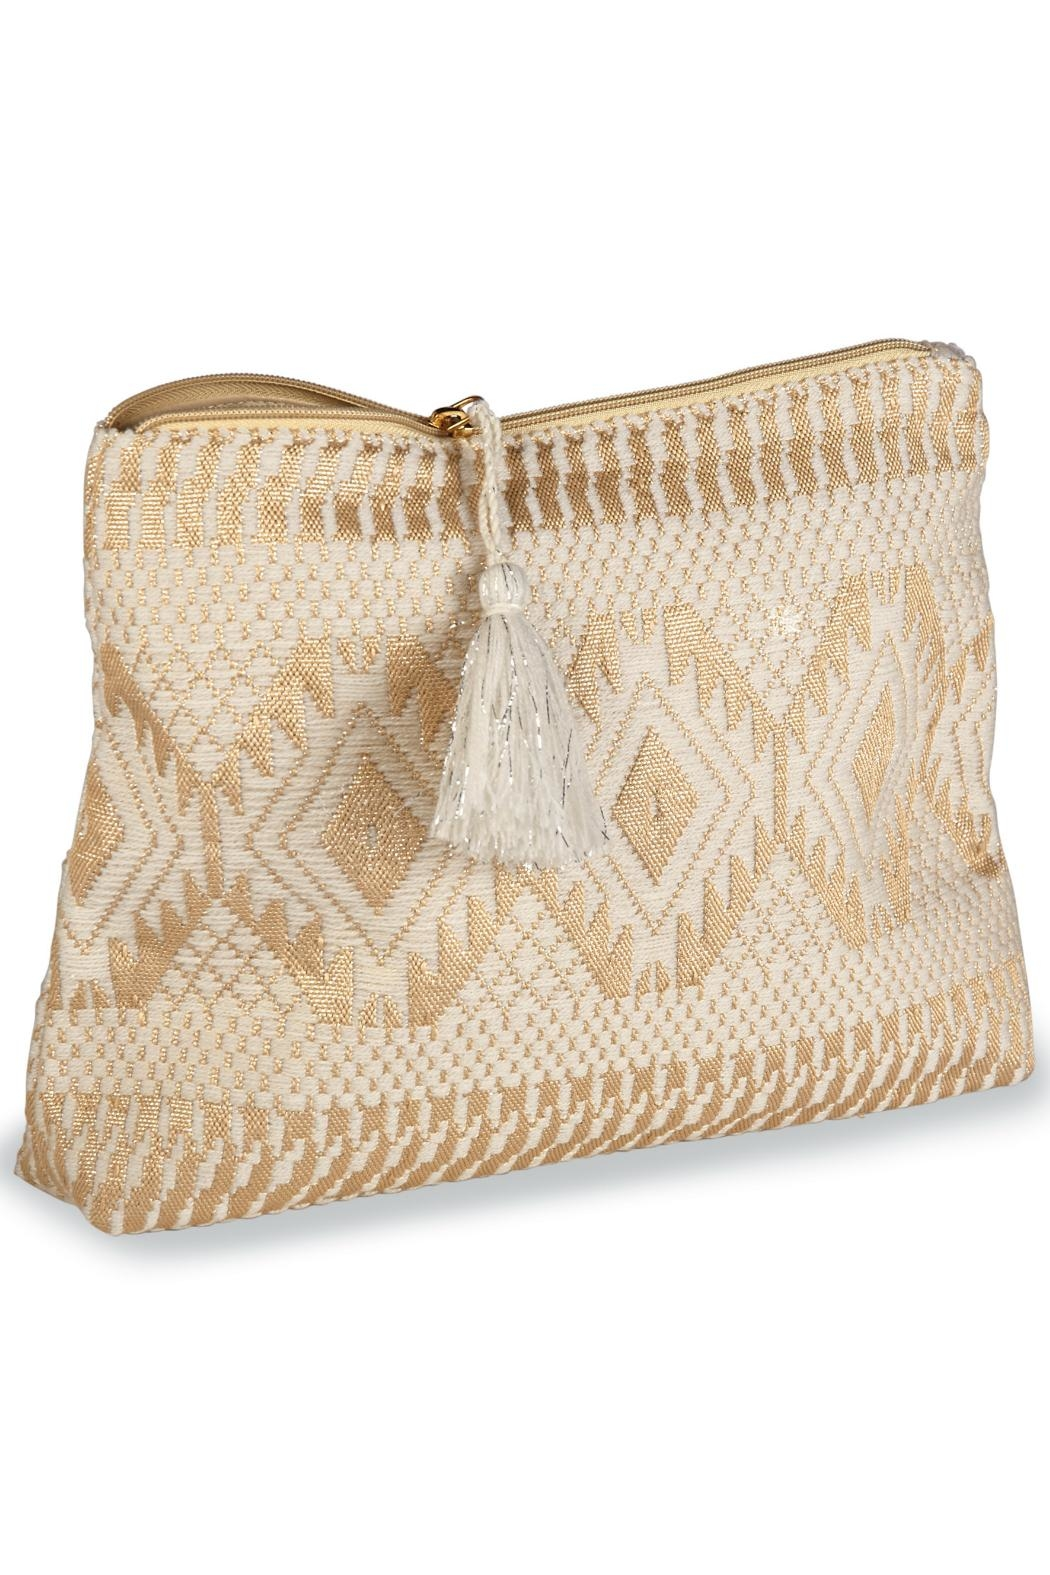 Mud Pie Shimmery Jacquard Clutch - Front Cropped Image